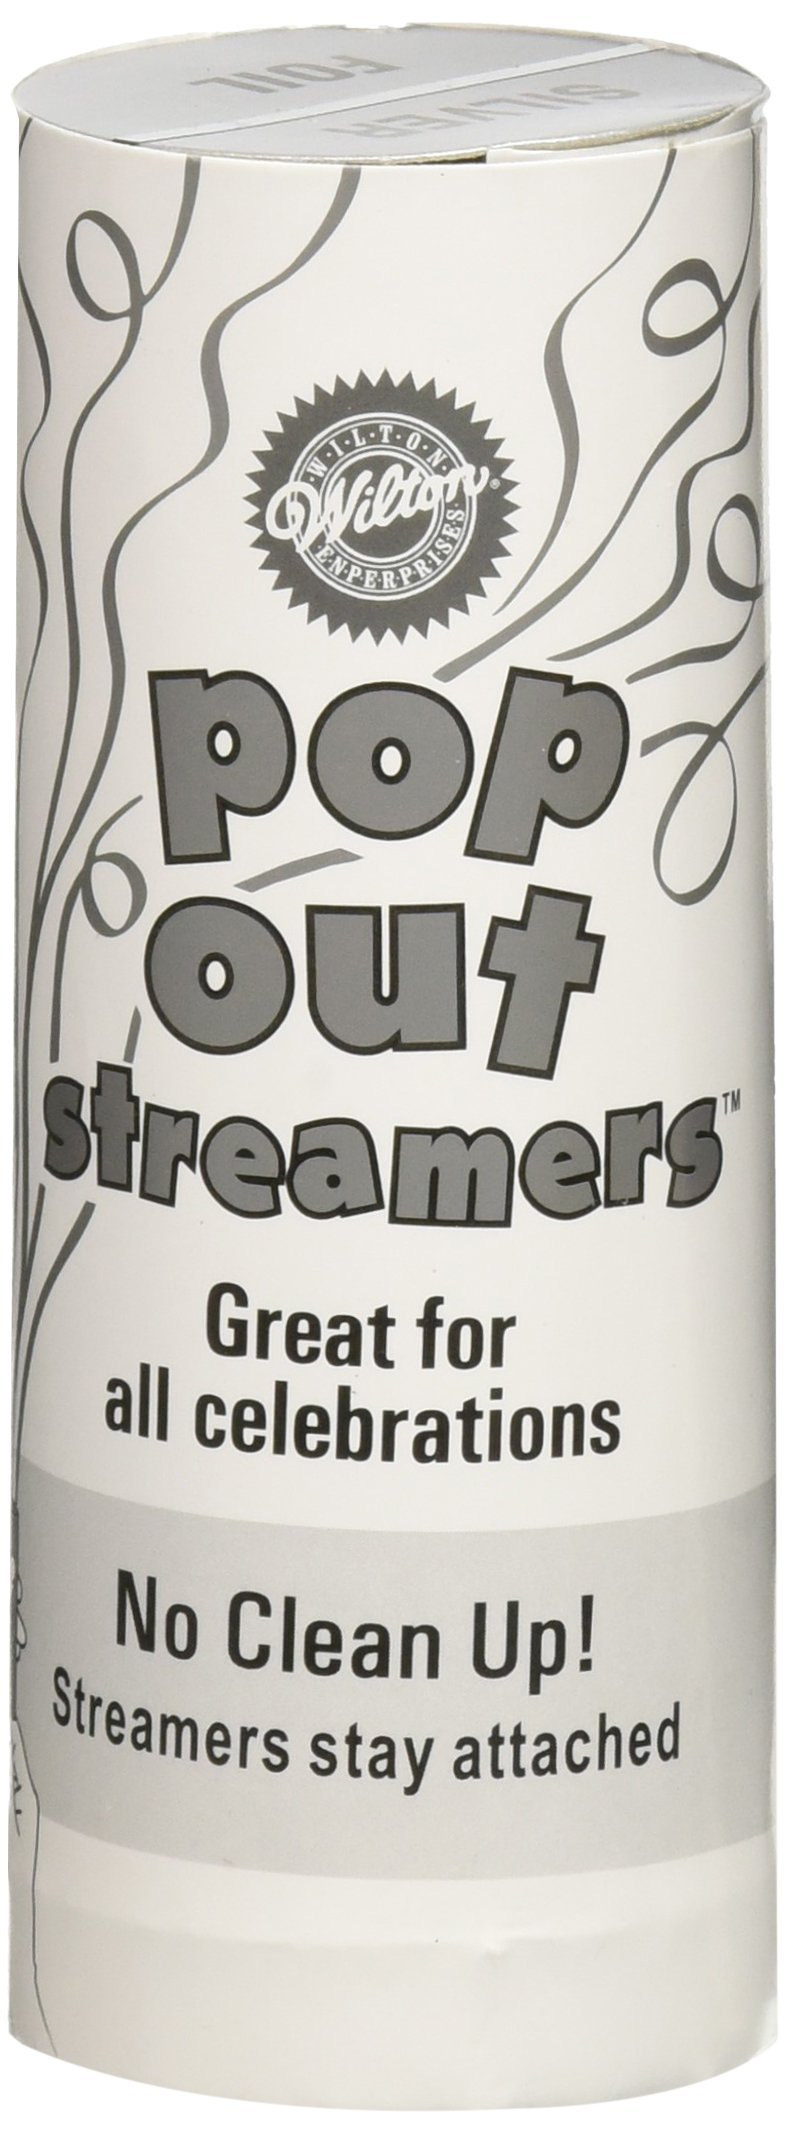 Wilton 1006-932 Pop Out Streamers, 14 pack by Simplicity